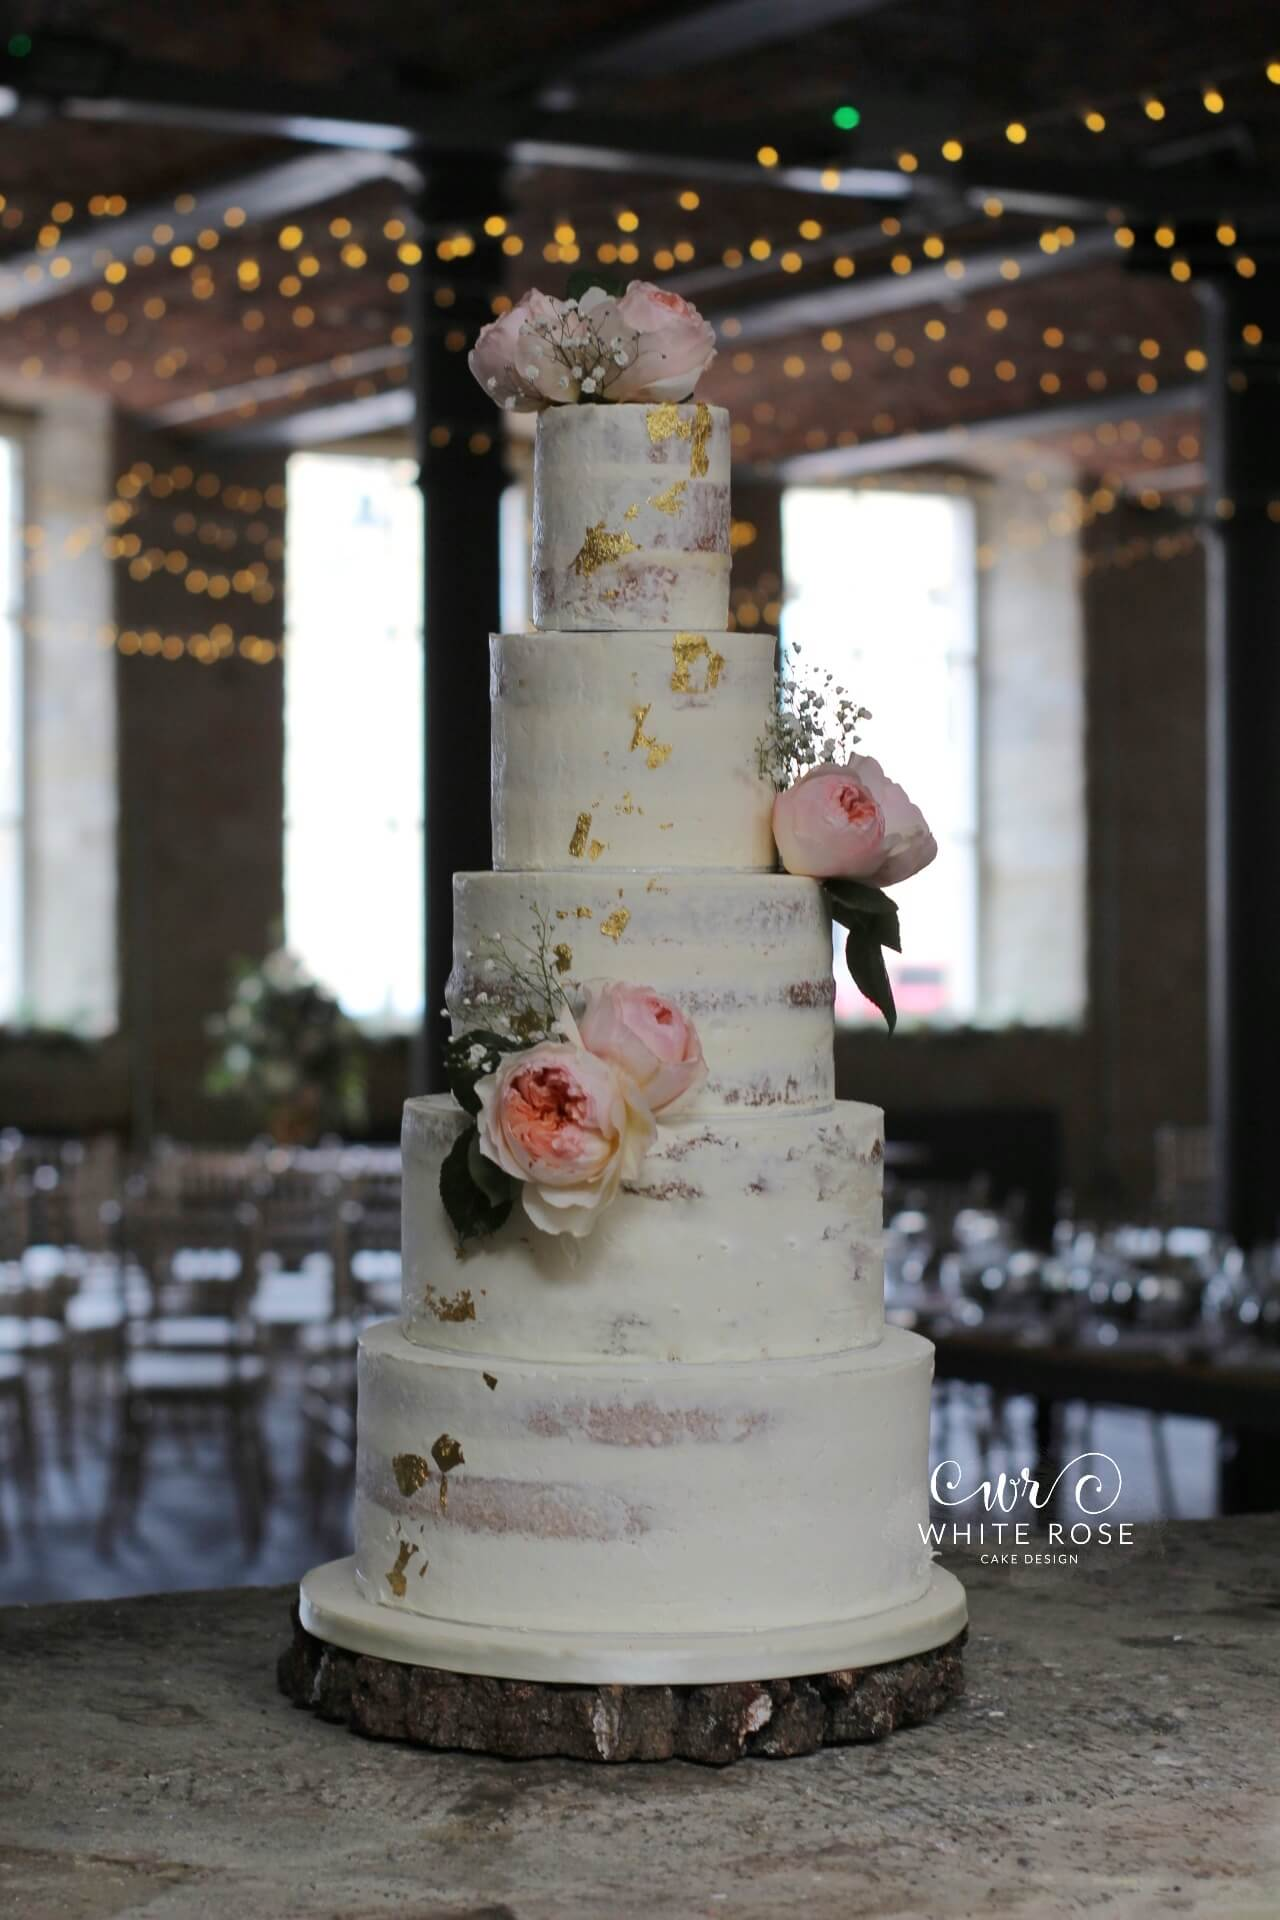 Five Tier Semi-Naked Wedding Cake with Juliet Roses and Gold at The Arches by White Rose Cake Design Bespoke Cake Makers in West Yorkshire